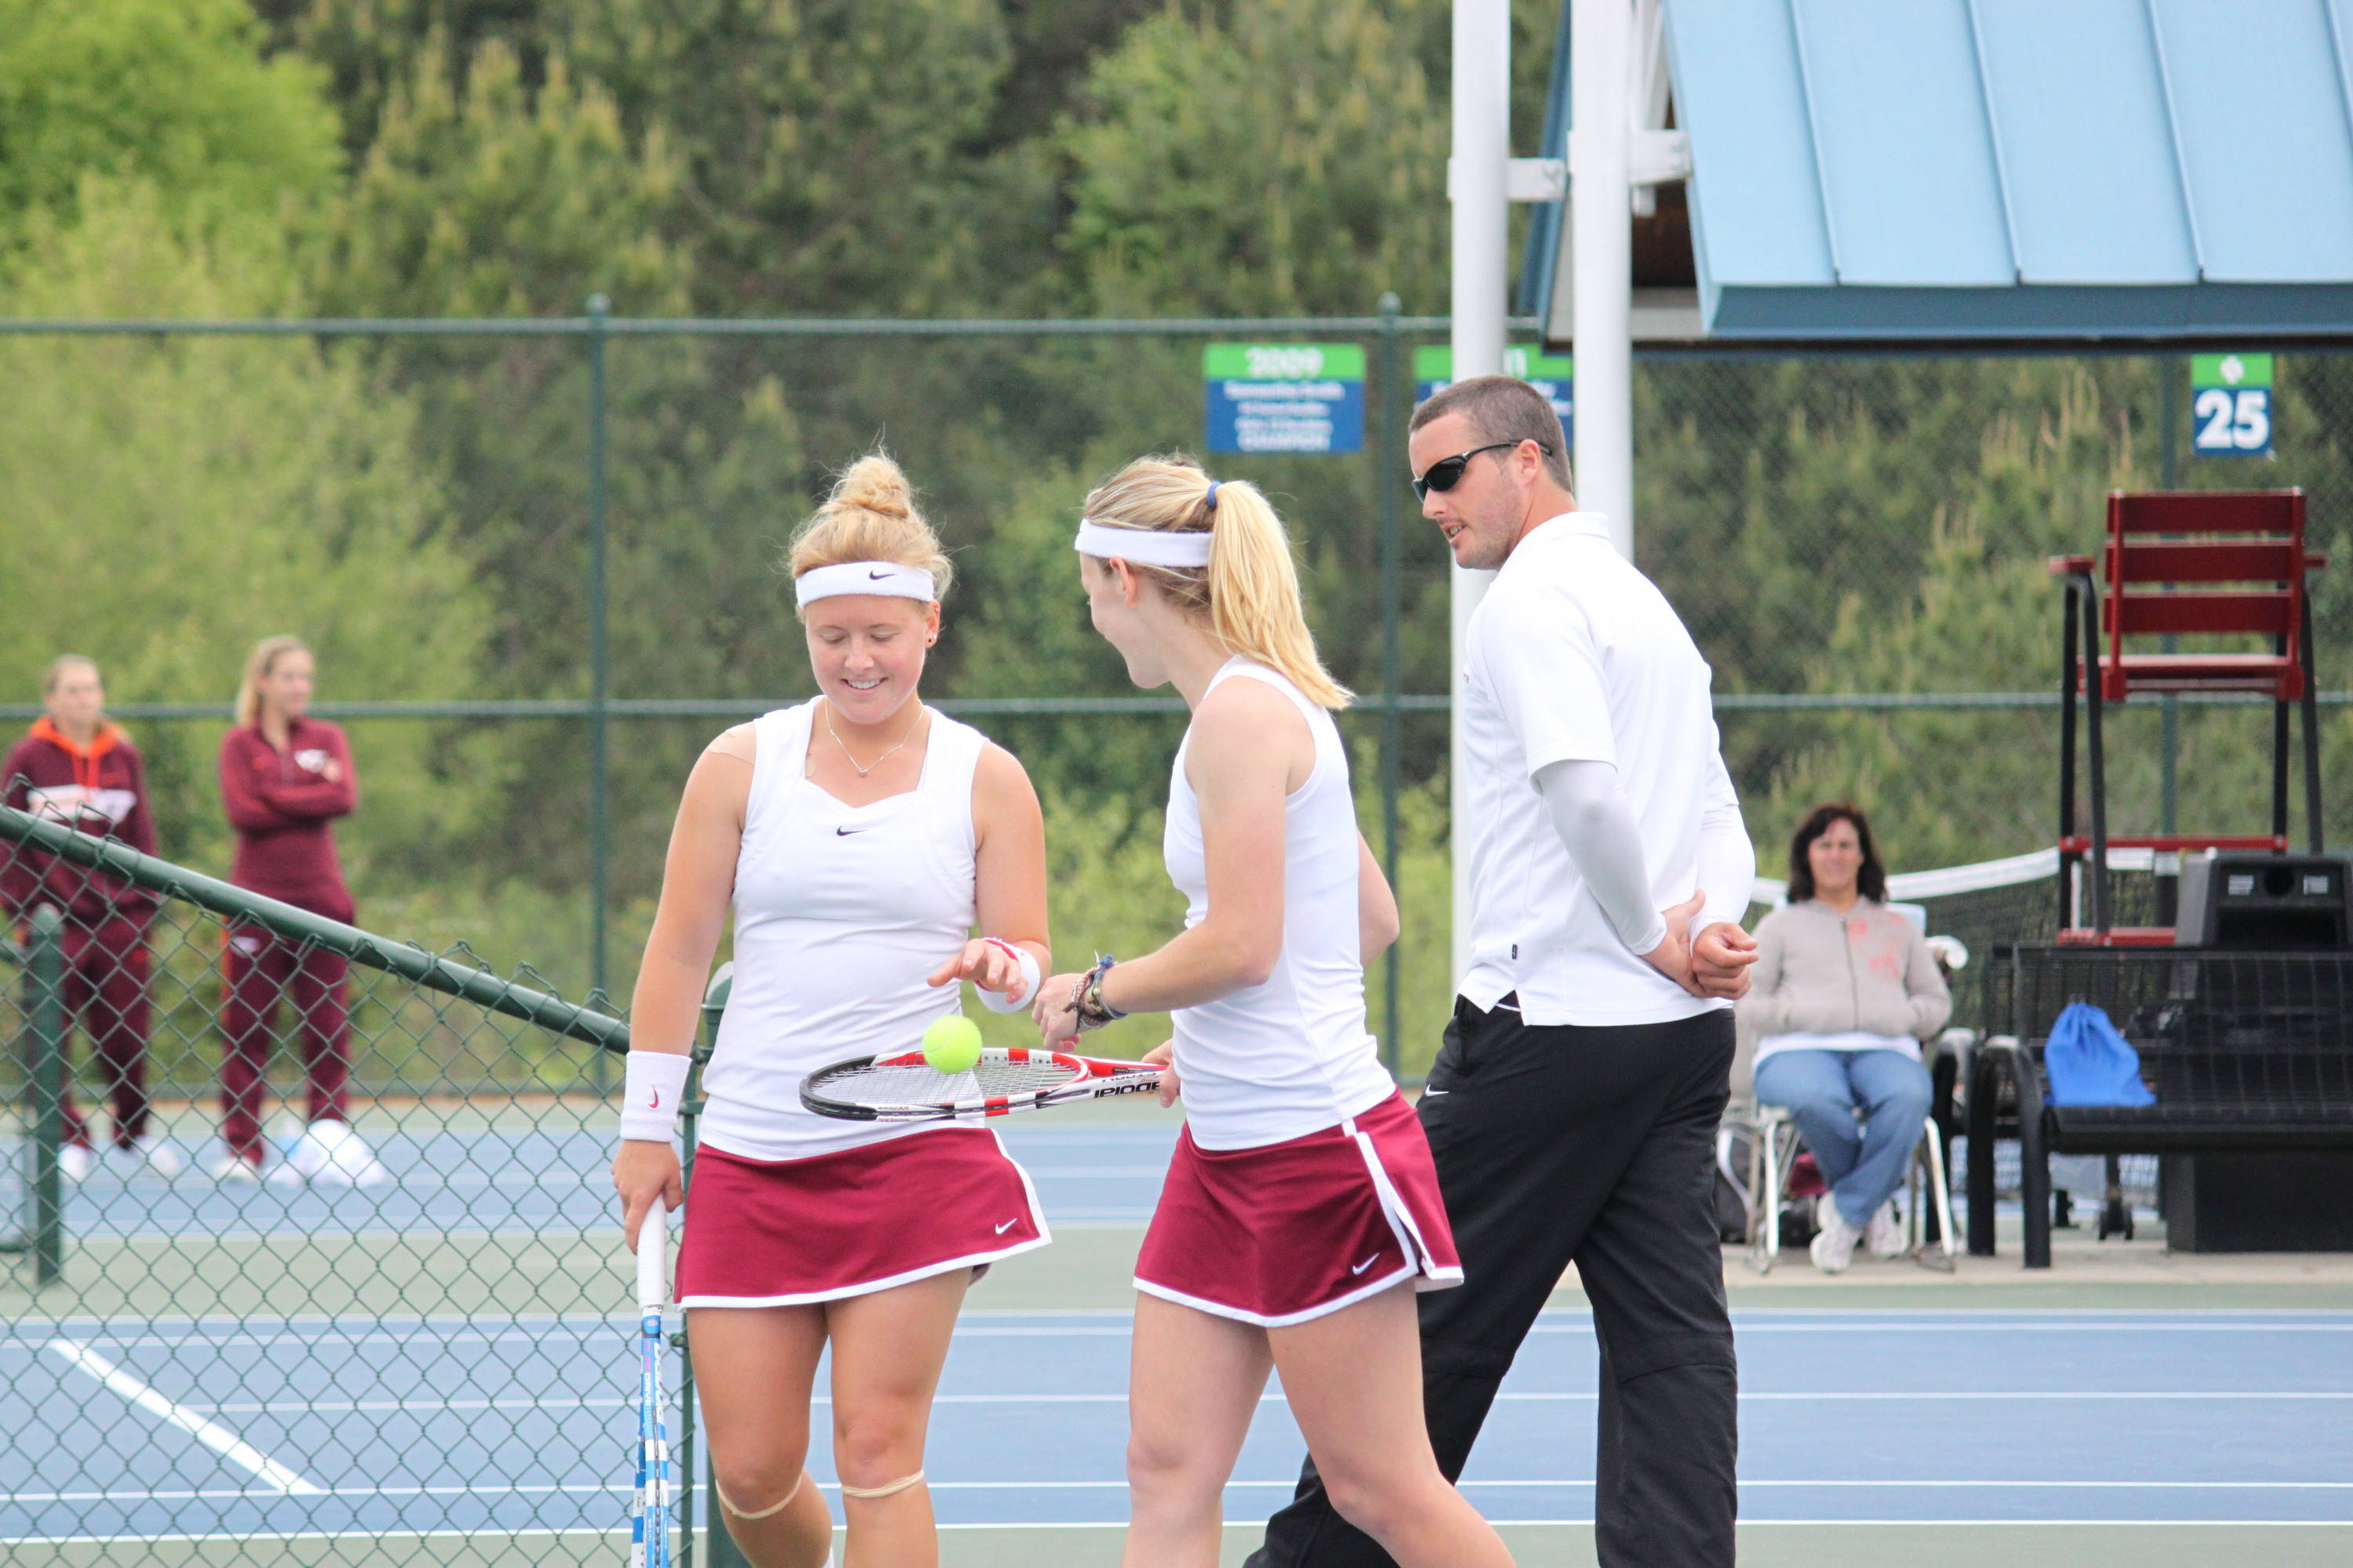 Ruth and Amy get instructions from Coach Oliver Foreman